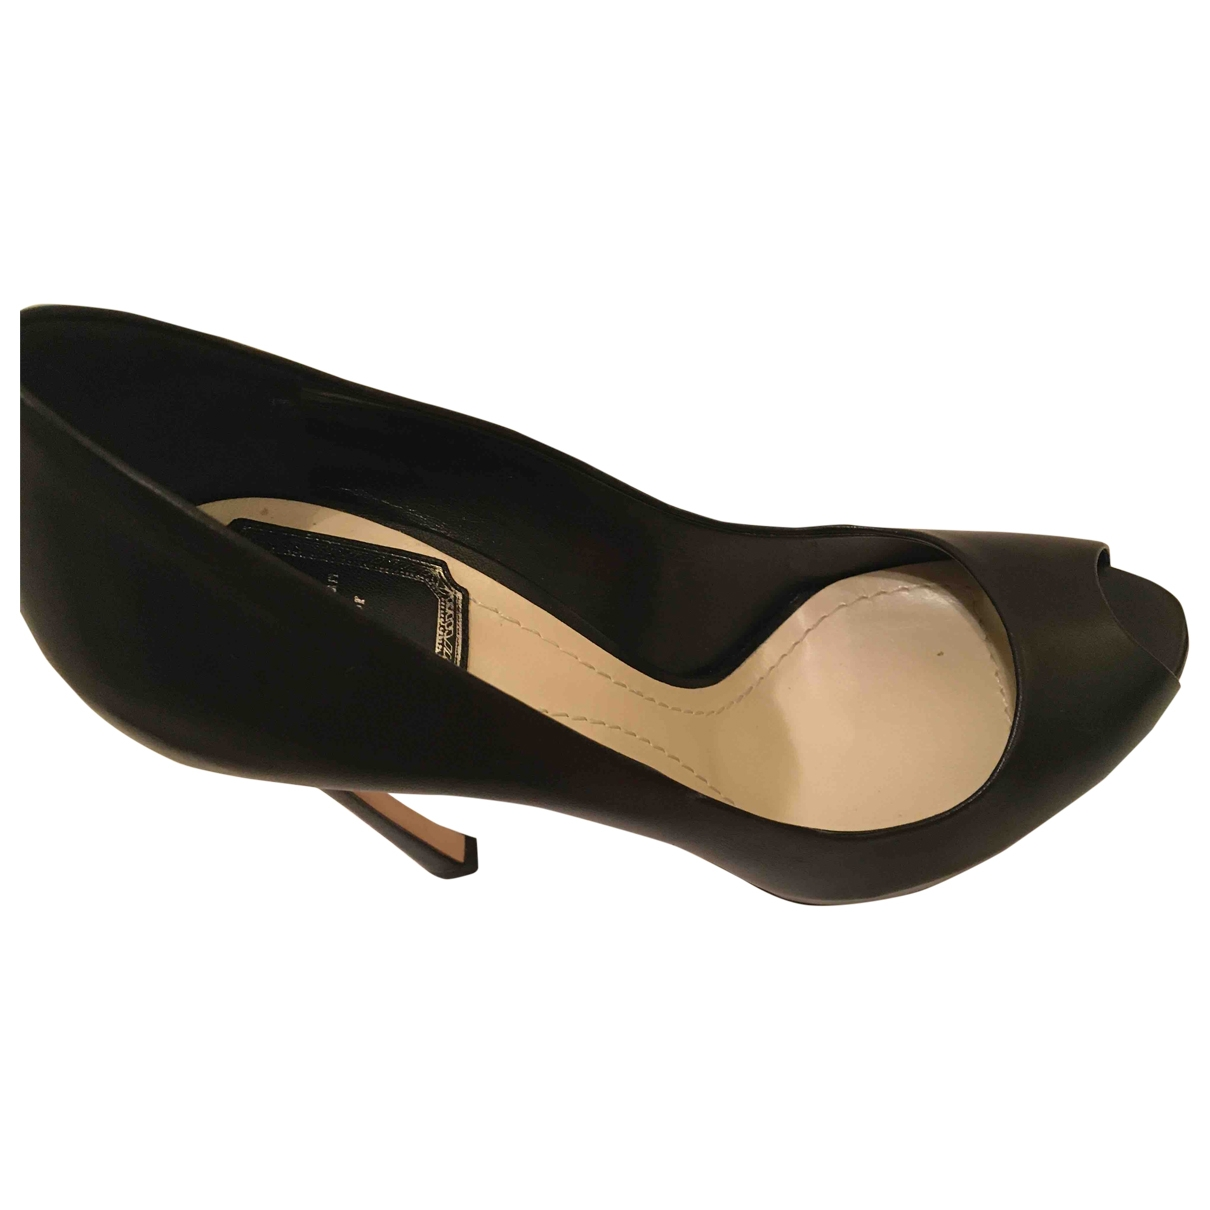 Dior Miss Dior Peep Toes Black Leather Heels for Women 38 EU